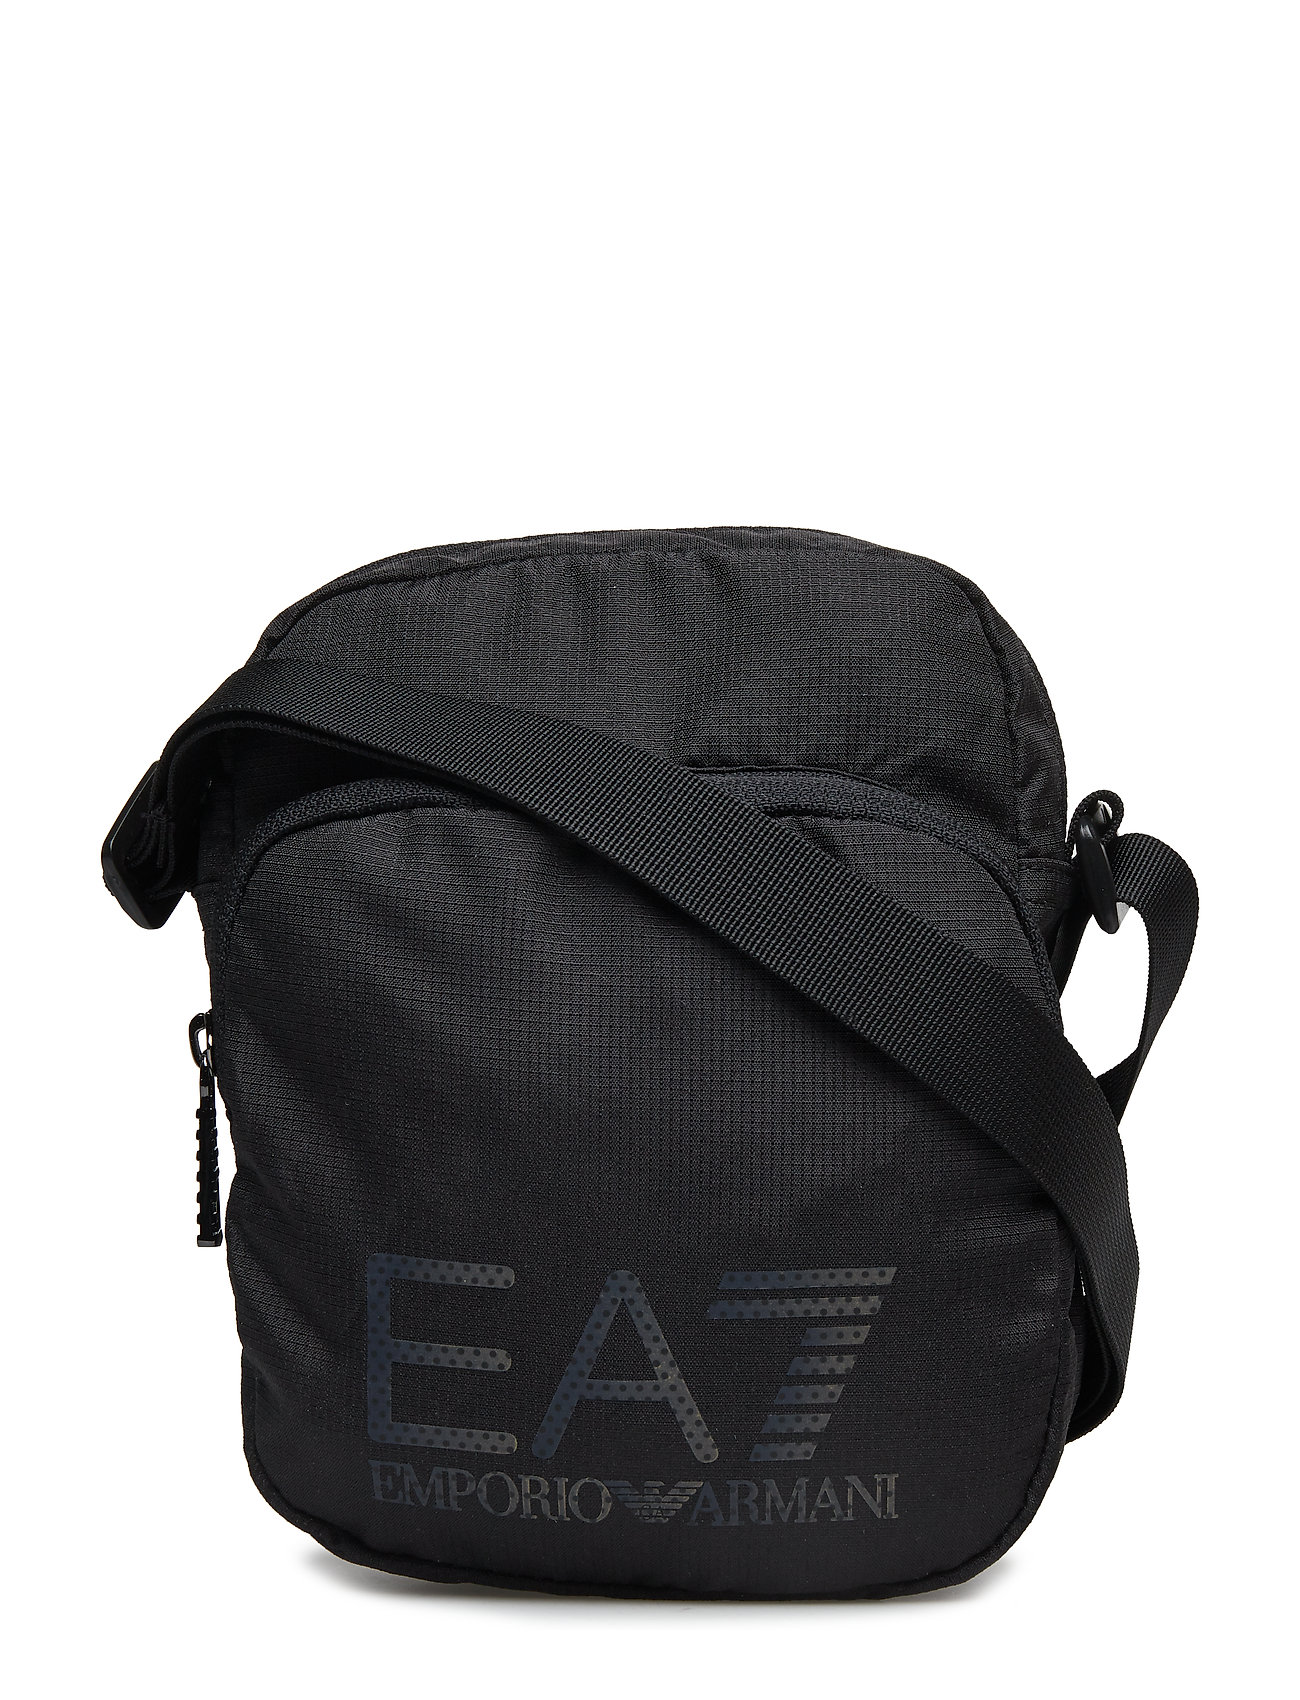 EA7 MAN'S BAG - NERO